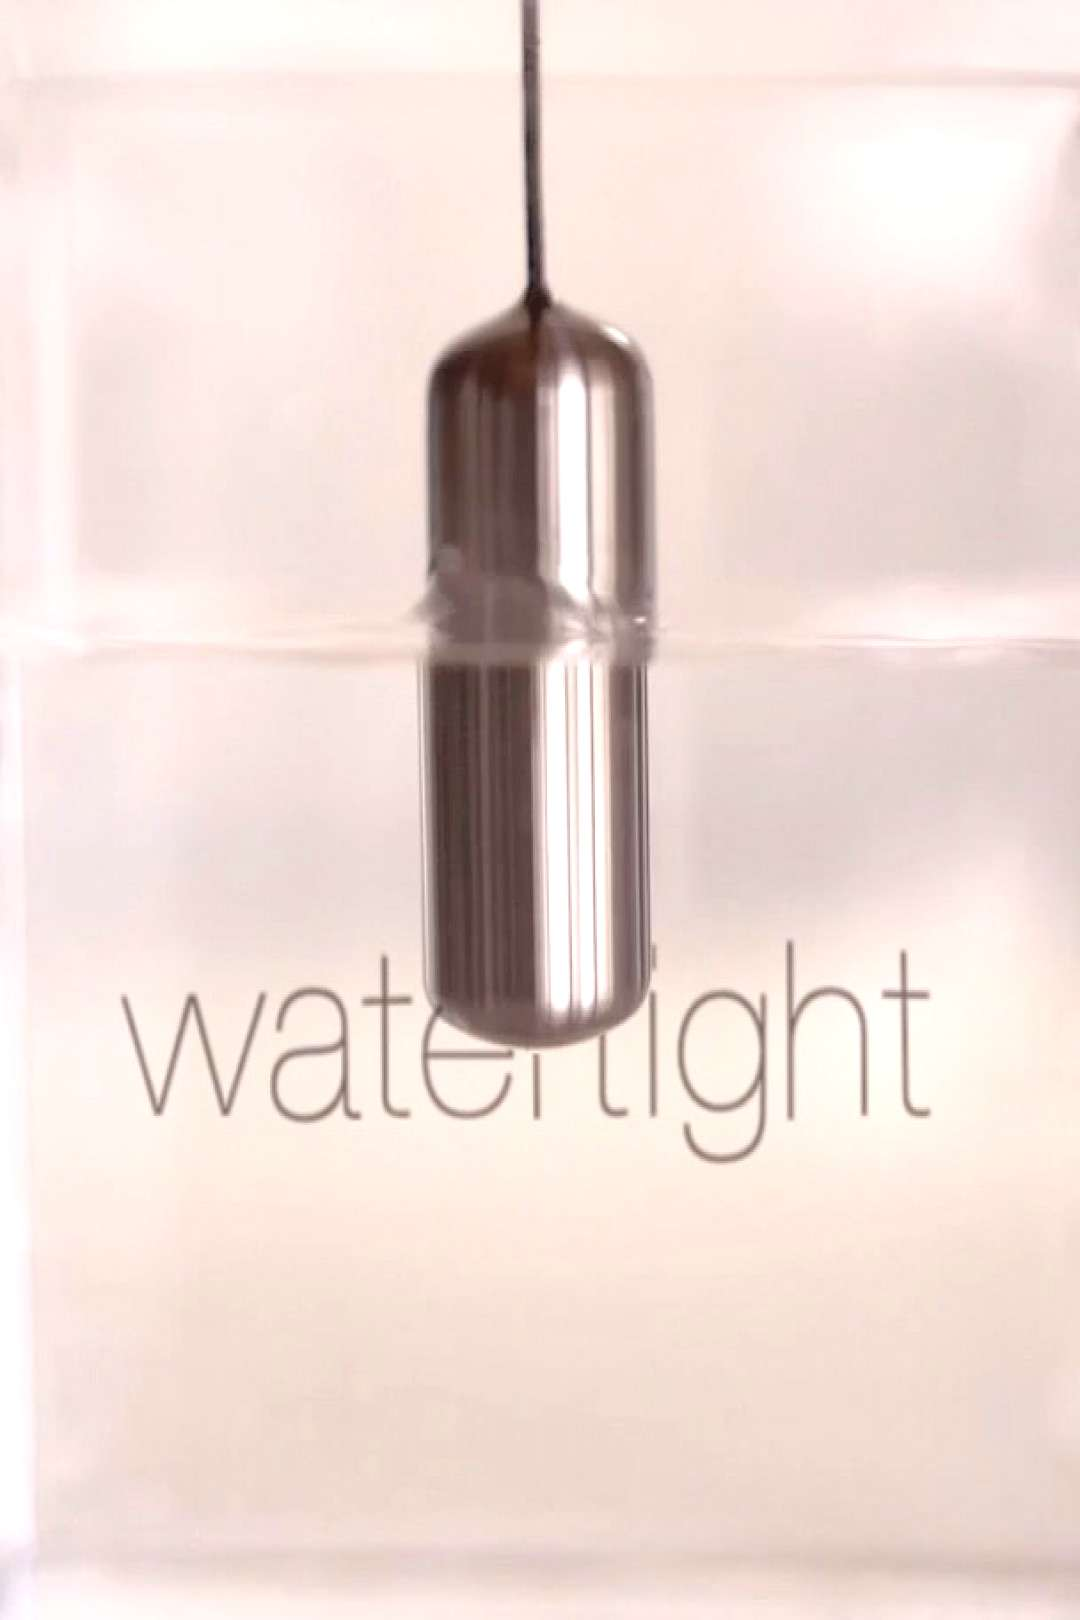 All of our titanium capsules are watertight. Even iNA, the model